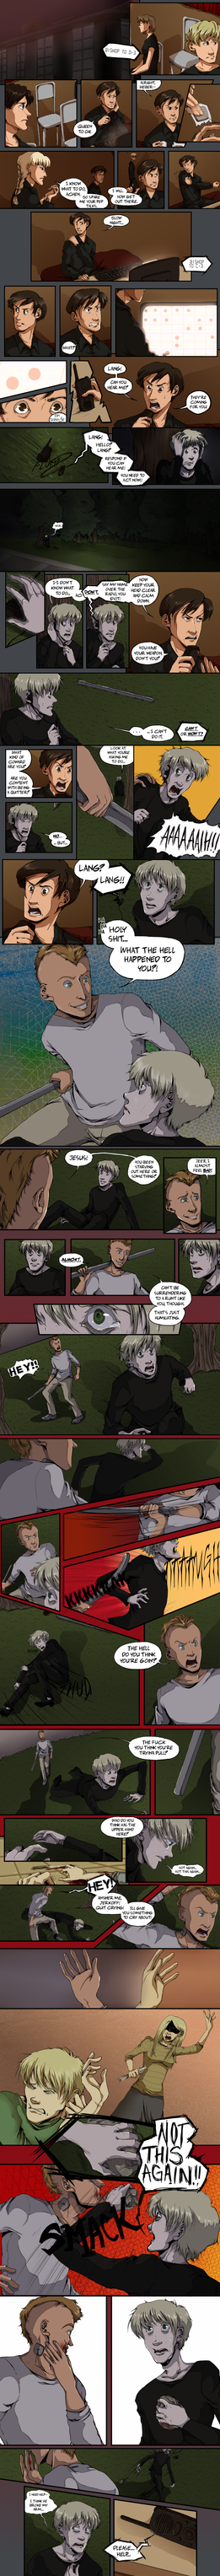 CA: Chapter 04 Page 22-30 by Charil